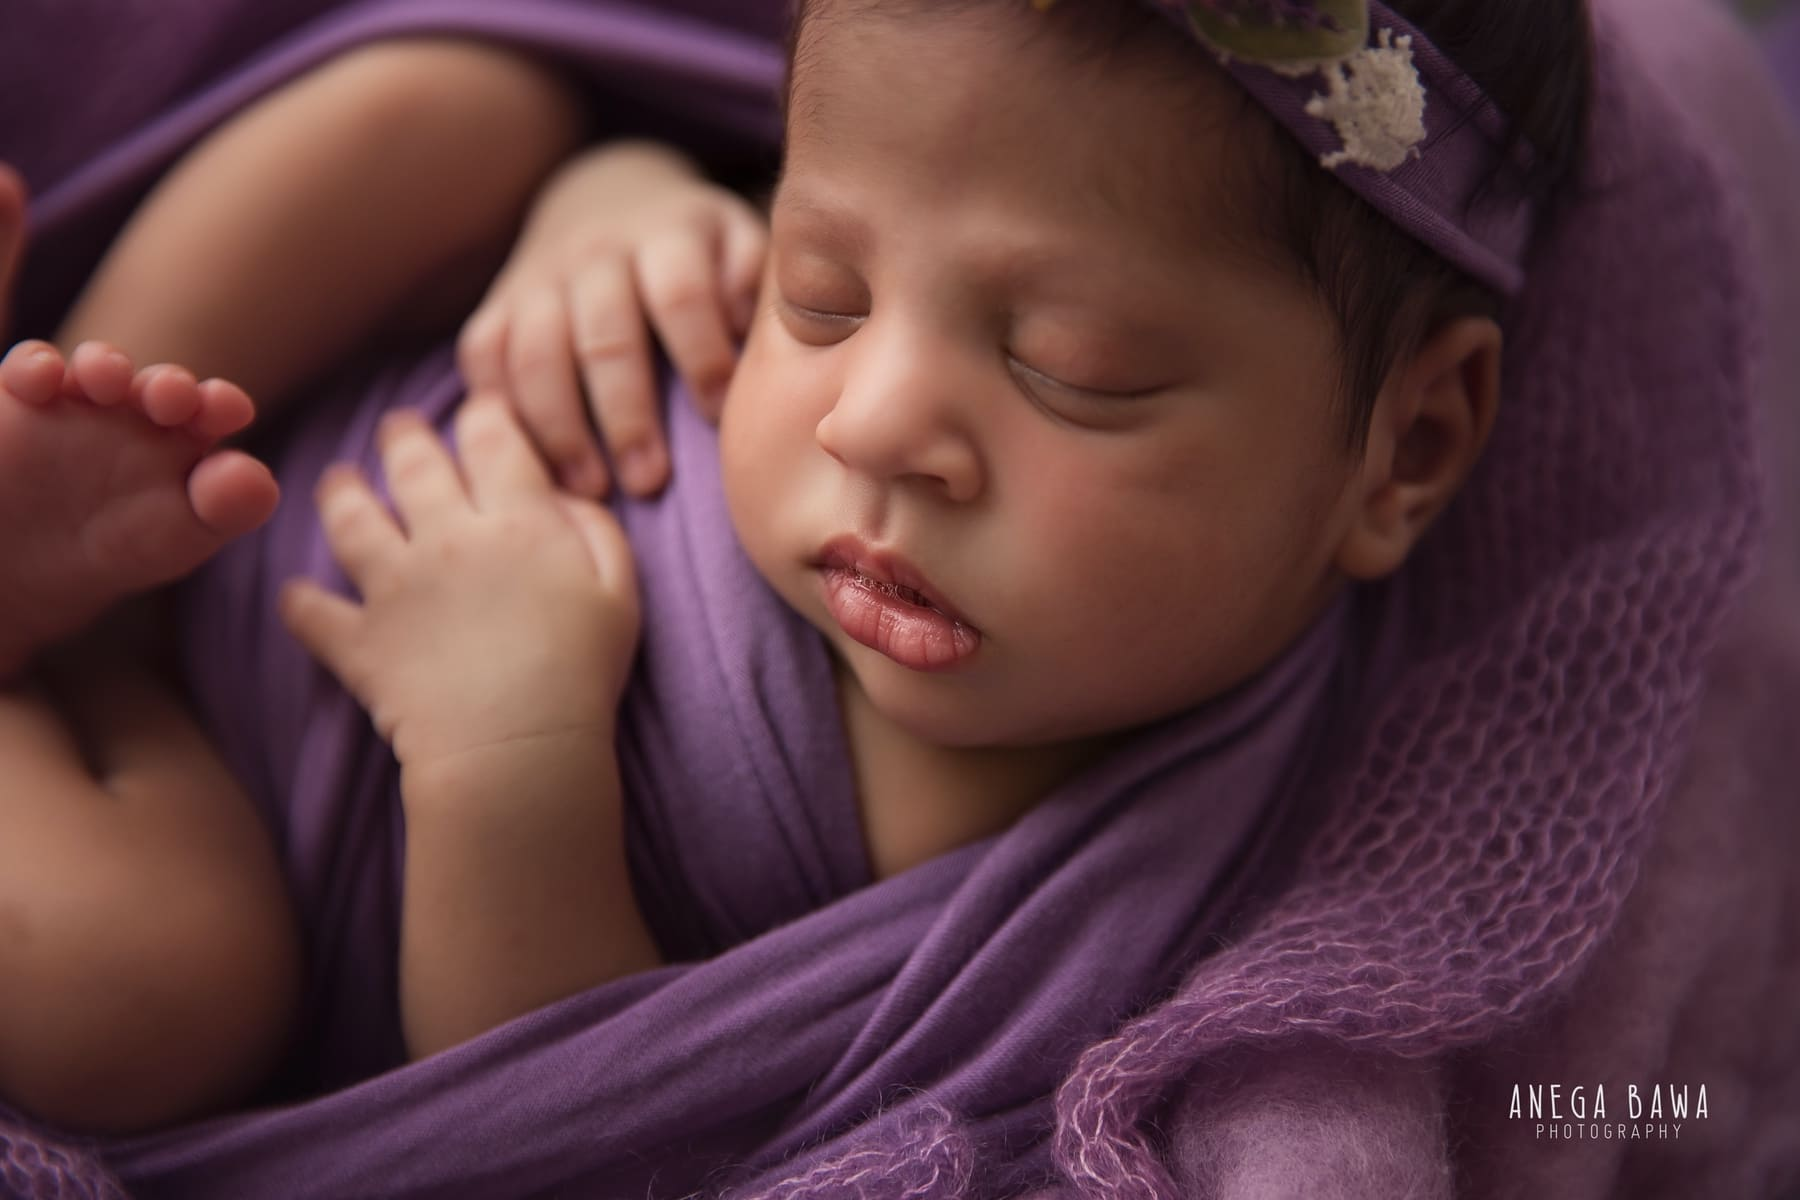 purple newborn photography delhi 14 days baby girl photoshoot gurgaon anega bawa